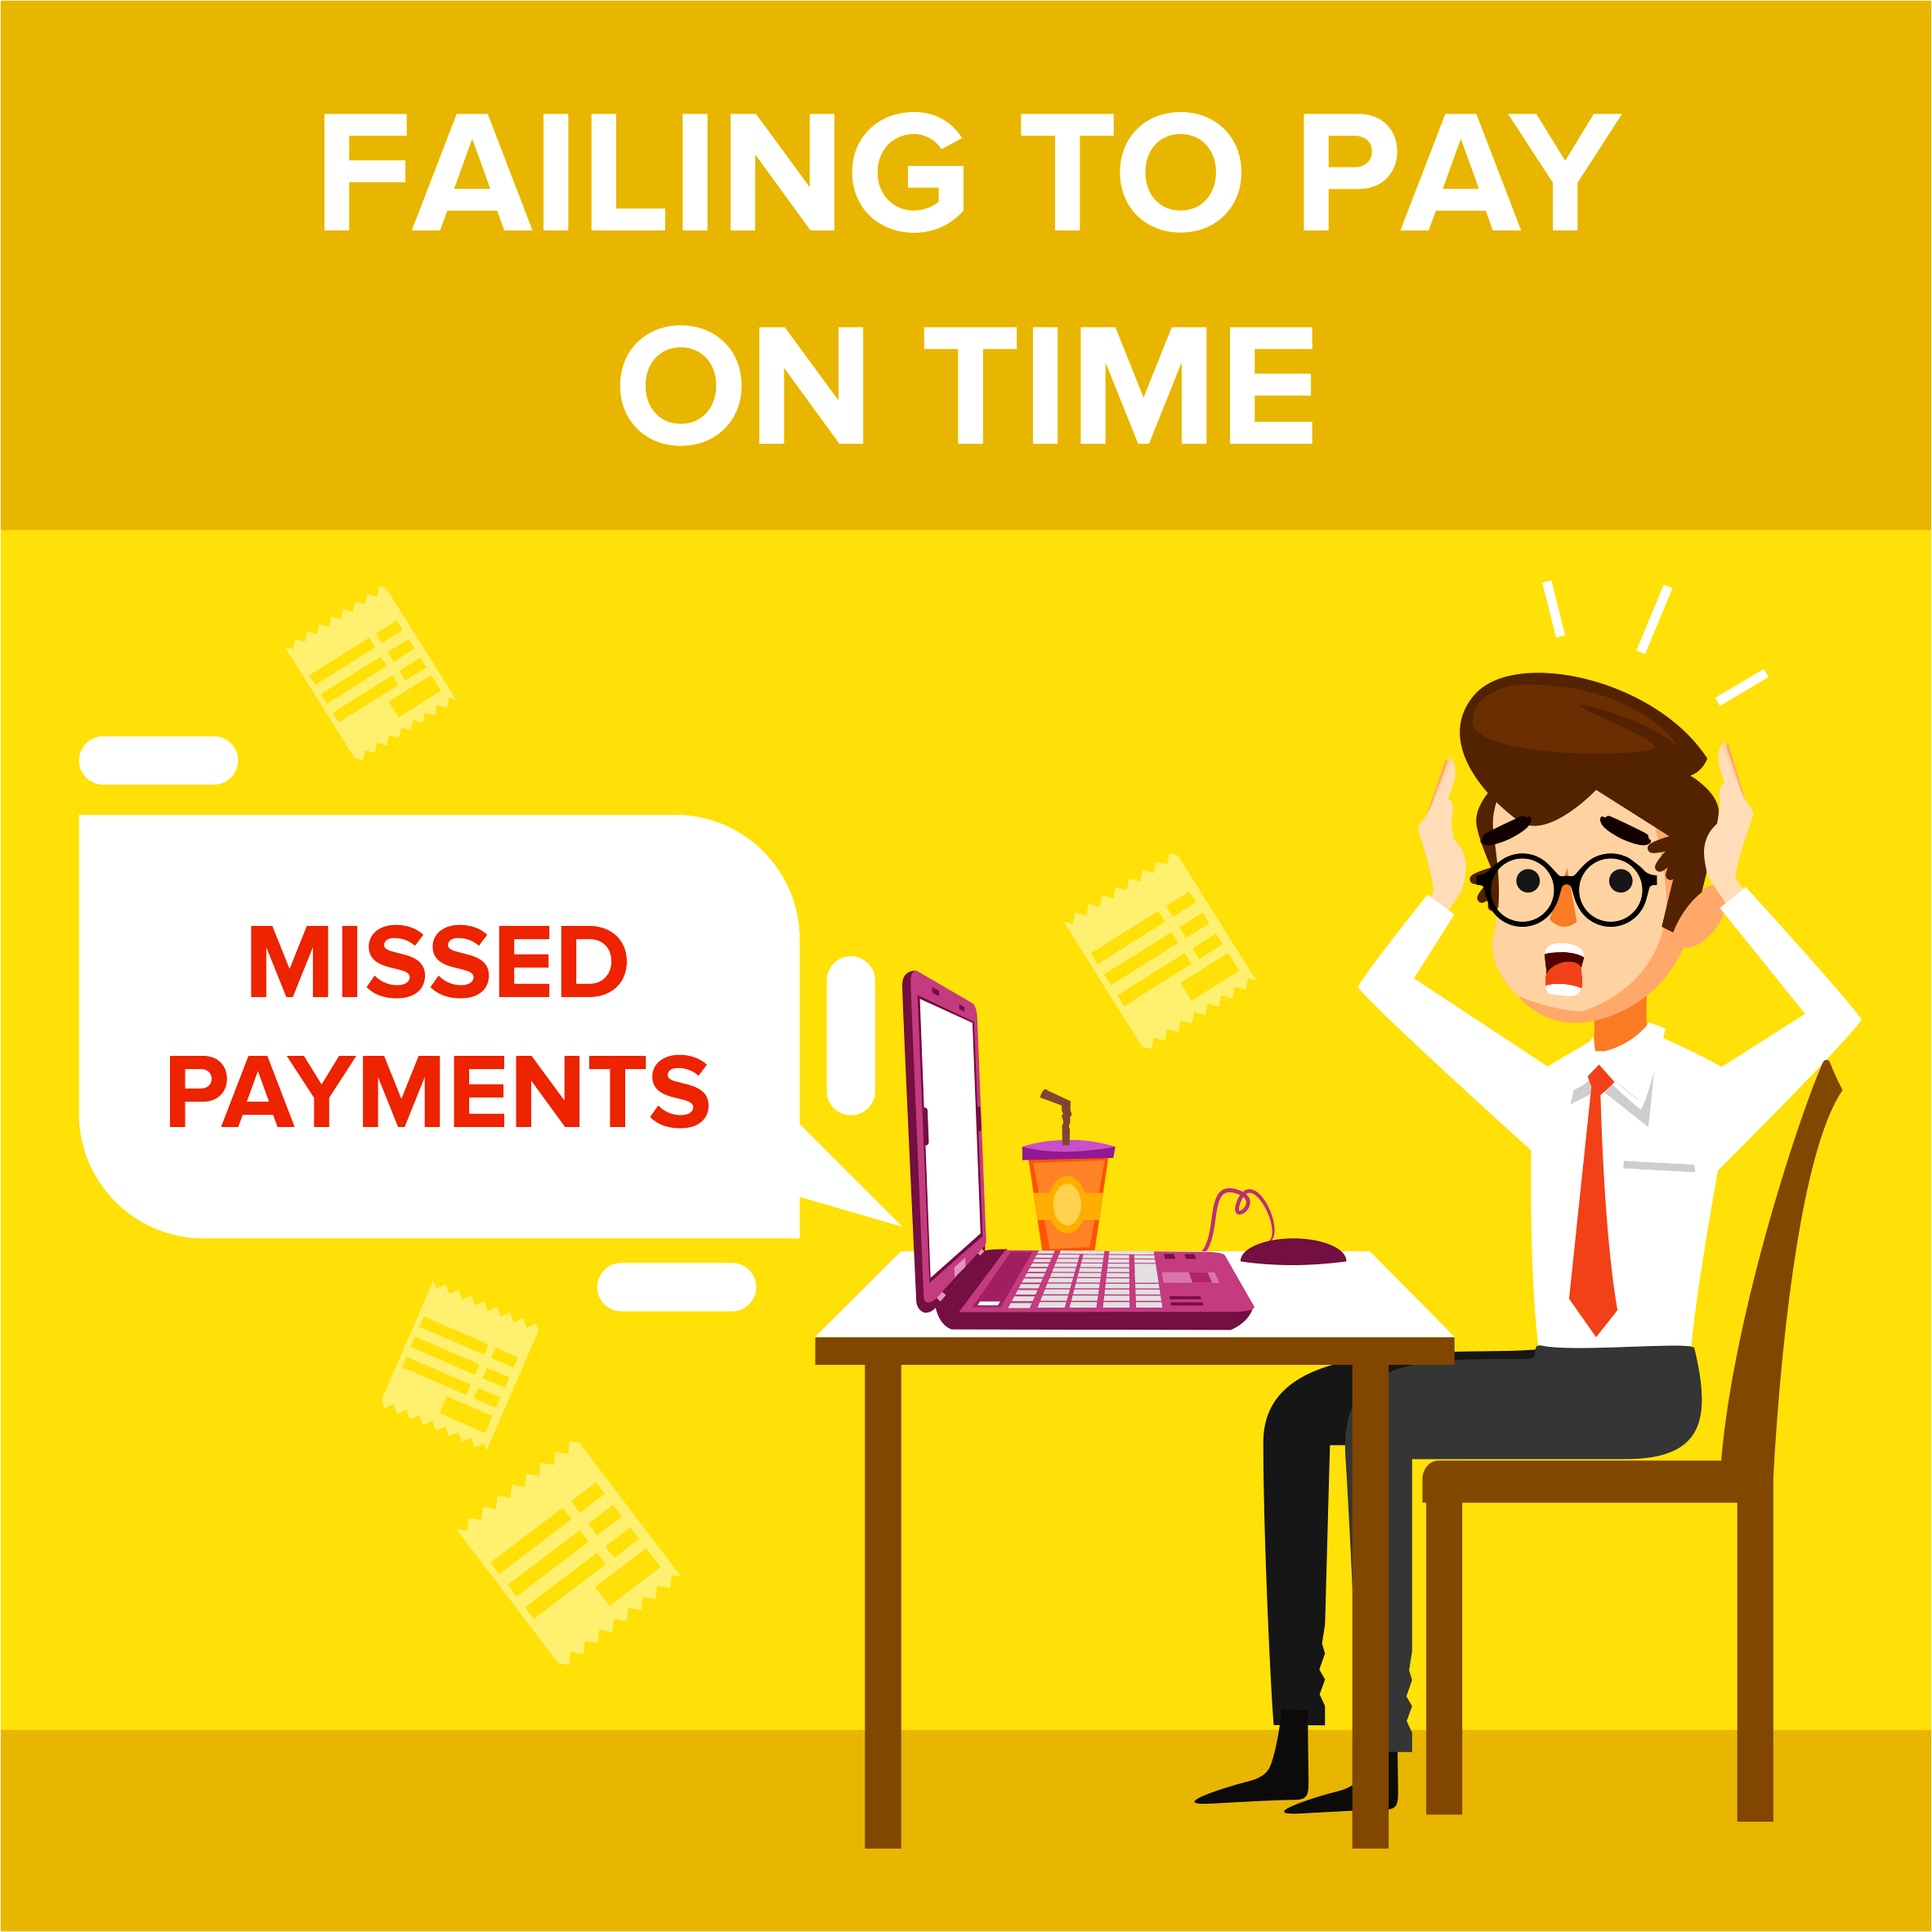 Failing To Pay on Time